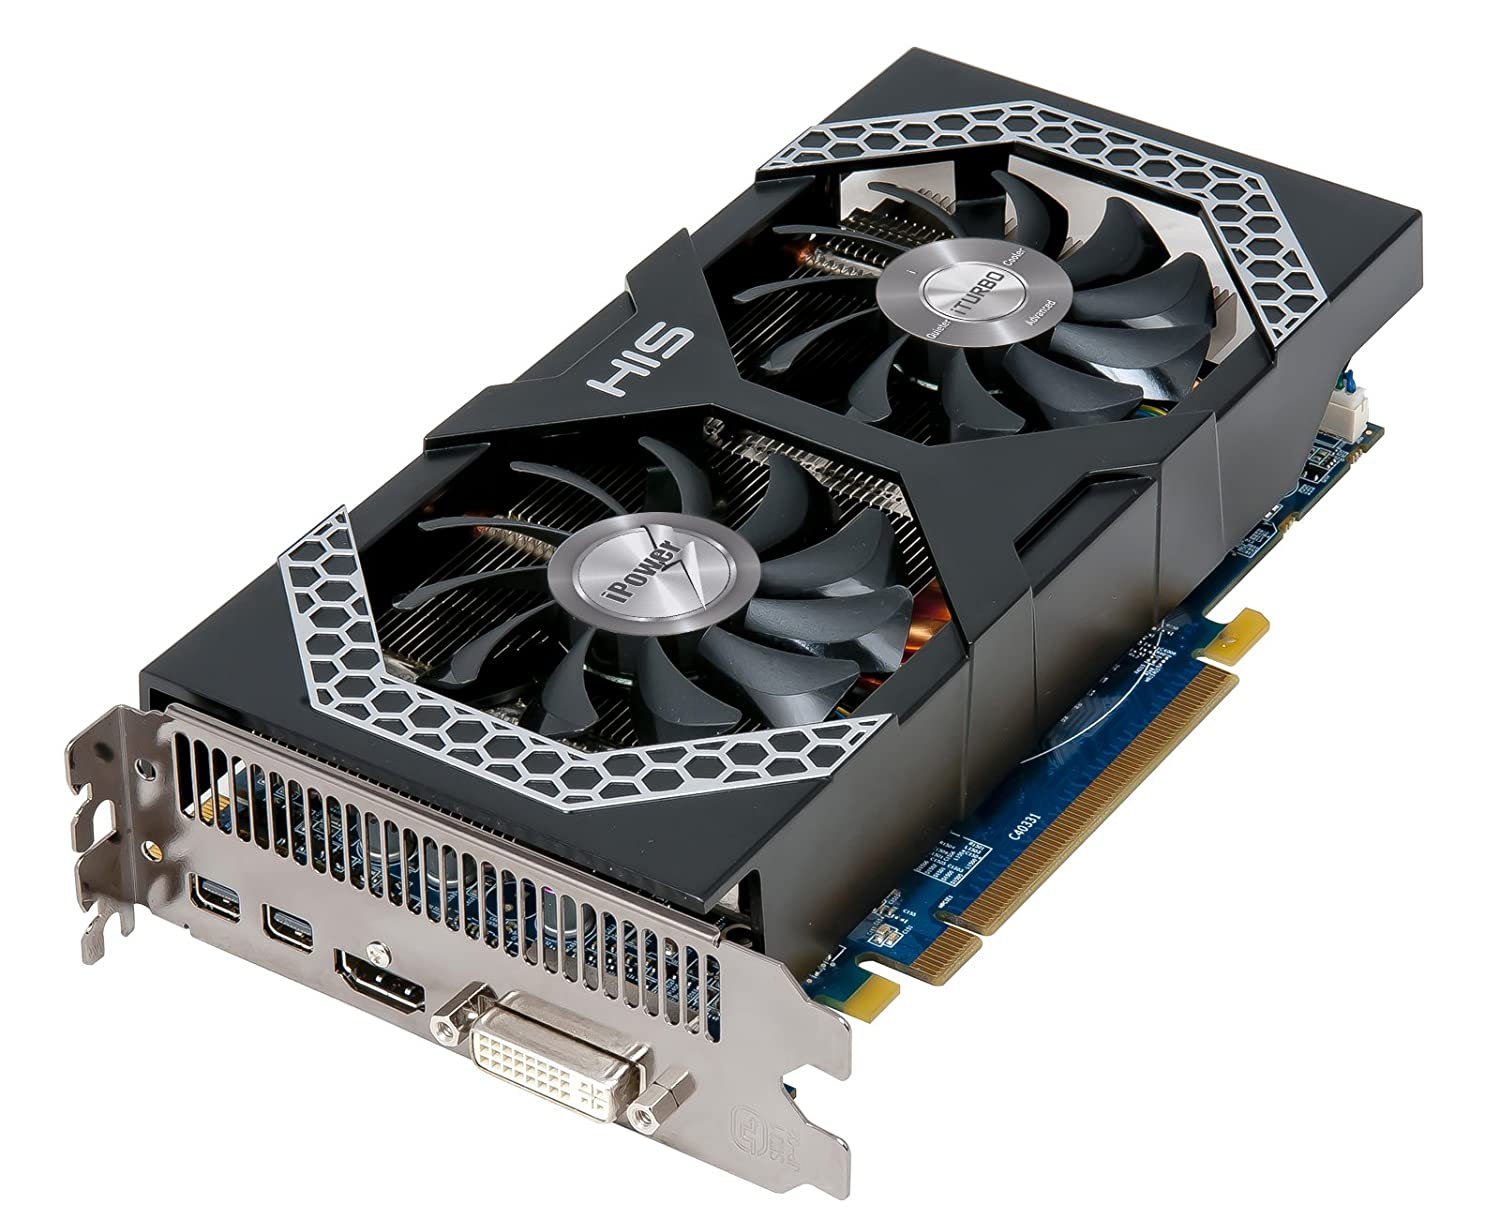 Amazon.com: HIS R9 270 iPower IceQ X Reloj de Boost cuadrado ...